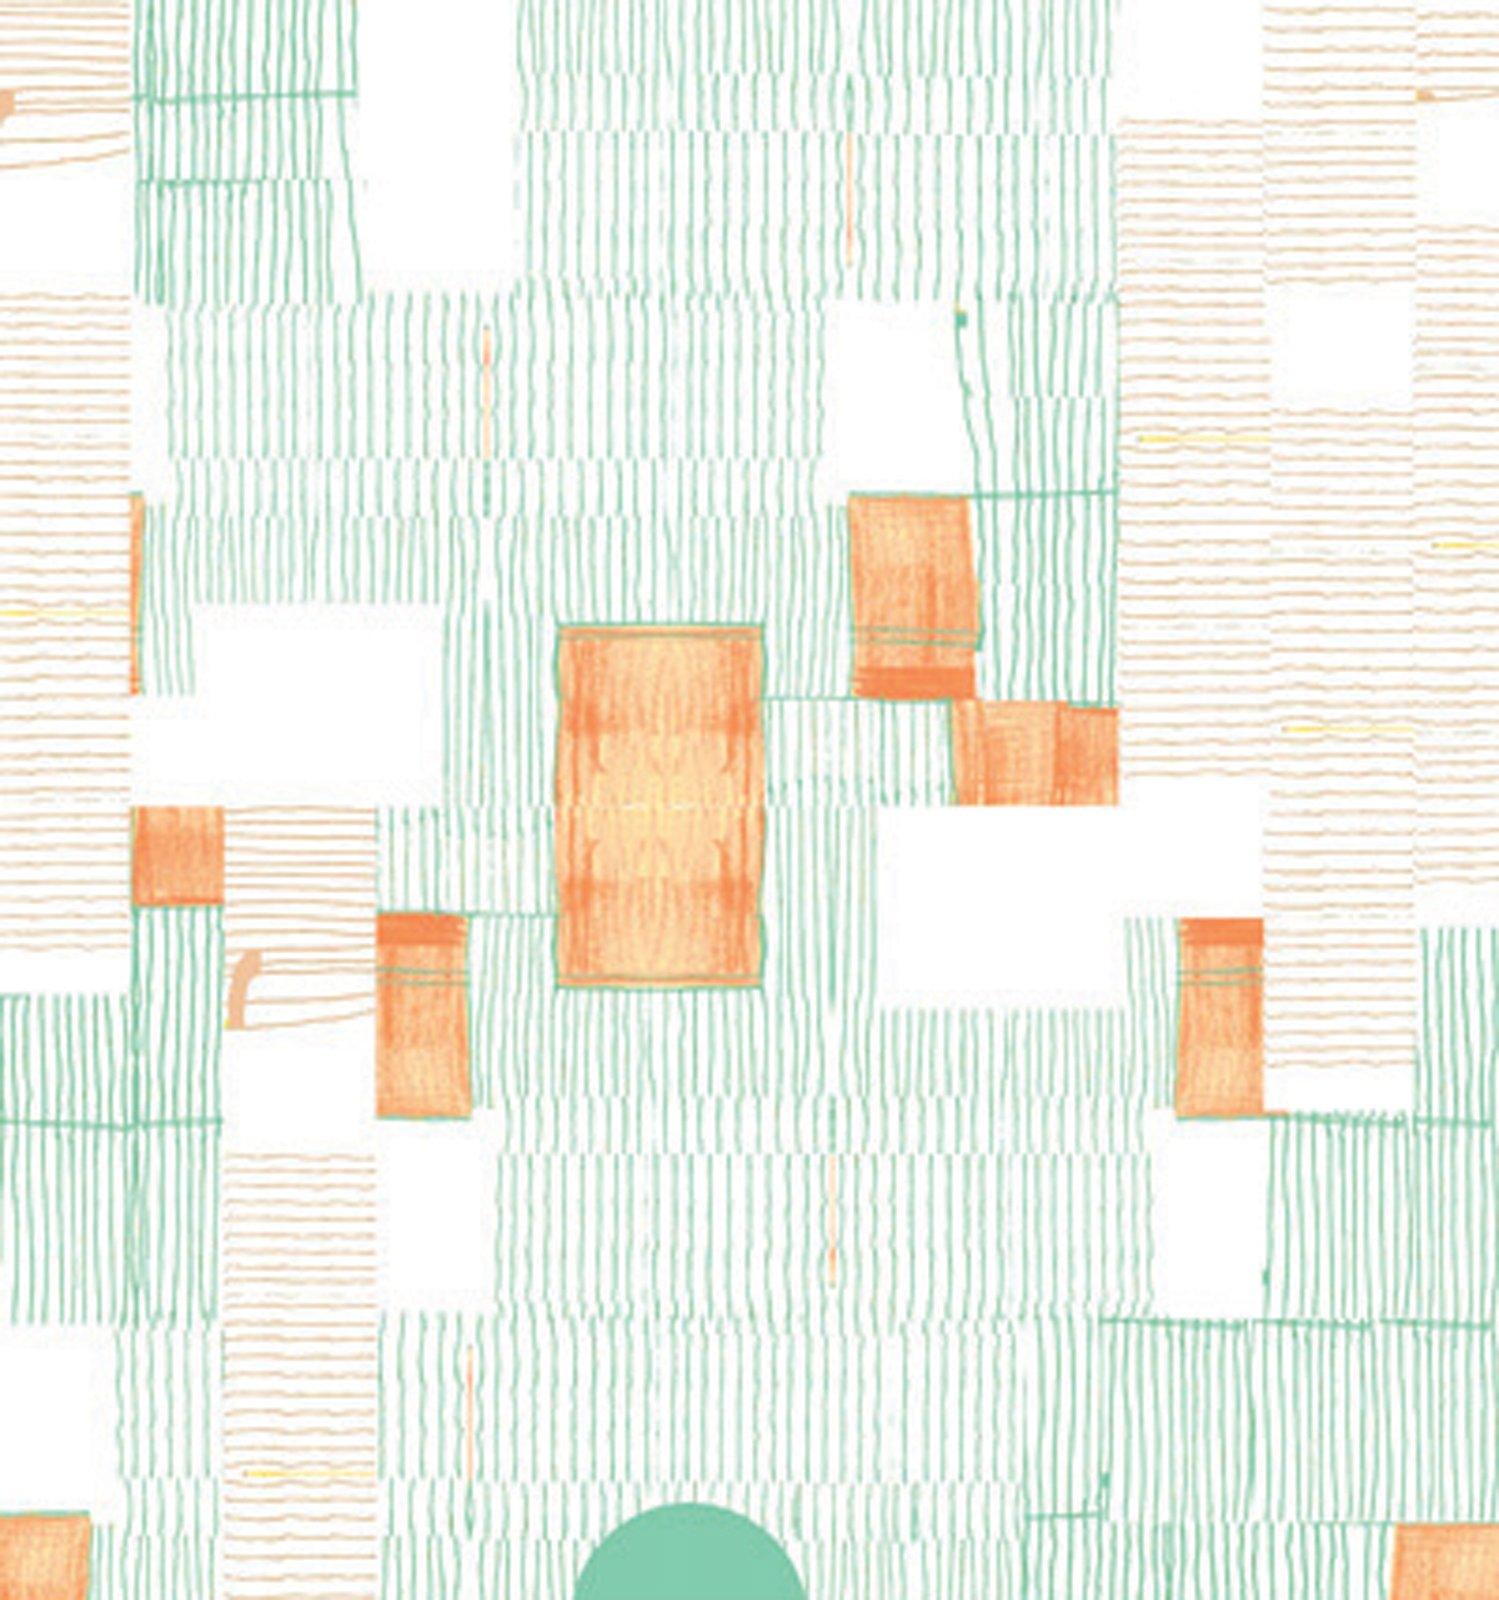 Renée Rossouw's South African heritage shines through in her bright, earthy designs. Working under Surface Design company, Robin Sprong Wallpaper, everything is imported from Germany and printed locally.  Mint Blanket is lightly geometric and would add a quirky edge to the kitchen or breakfast nook. The orange and mint color combination is surprisingly fantastic. $43 per three square feet.  New-Wave Wallpapers by Olivia Martin